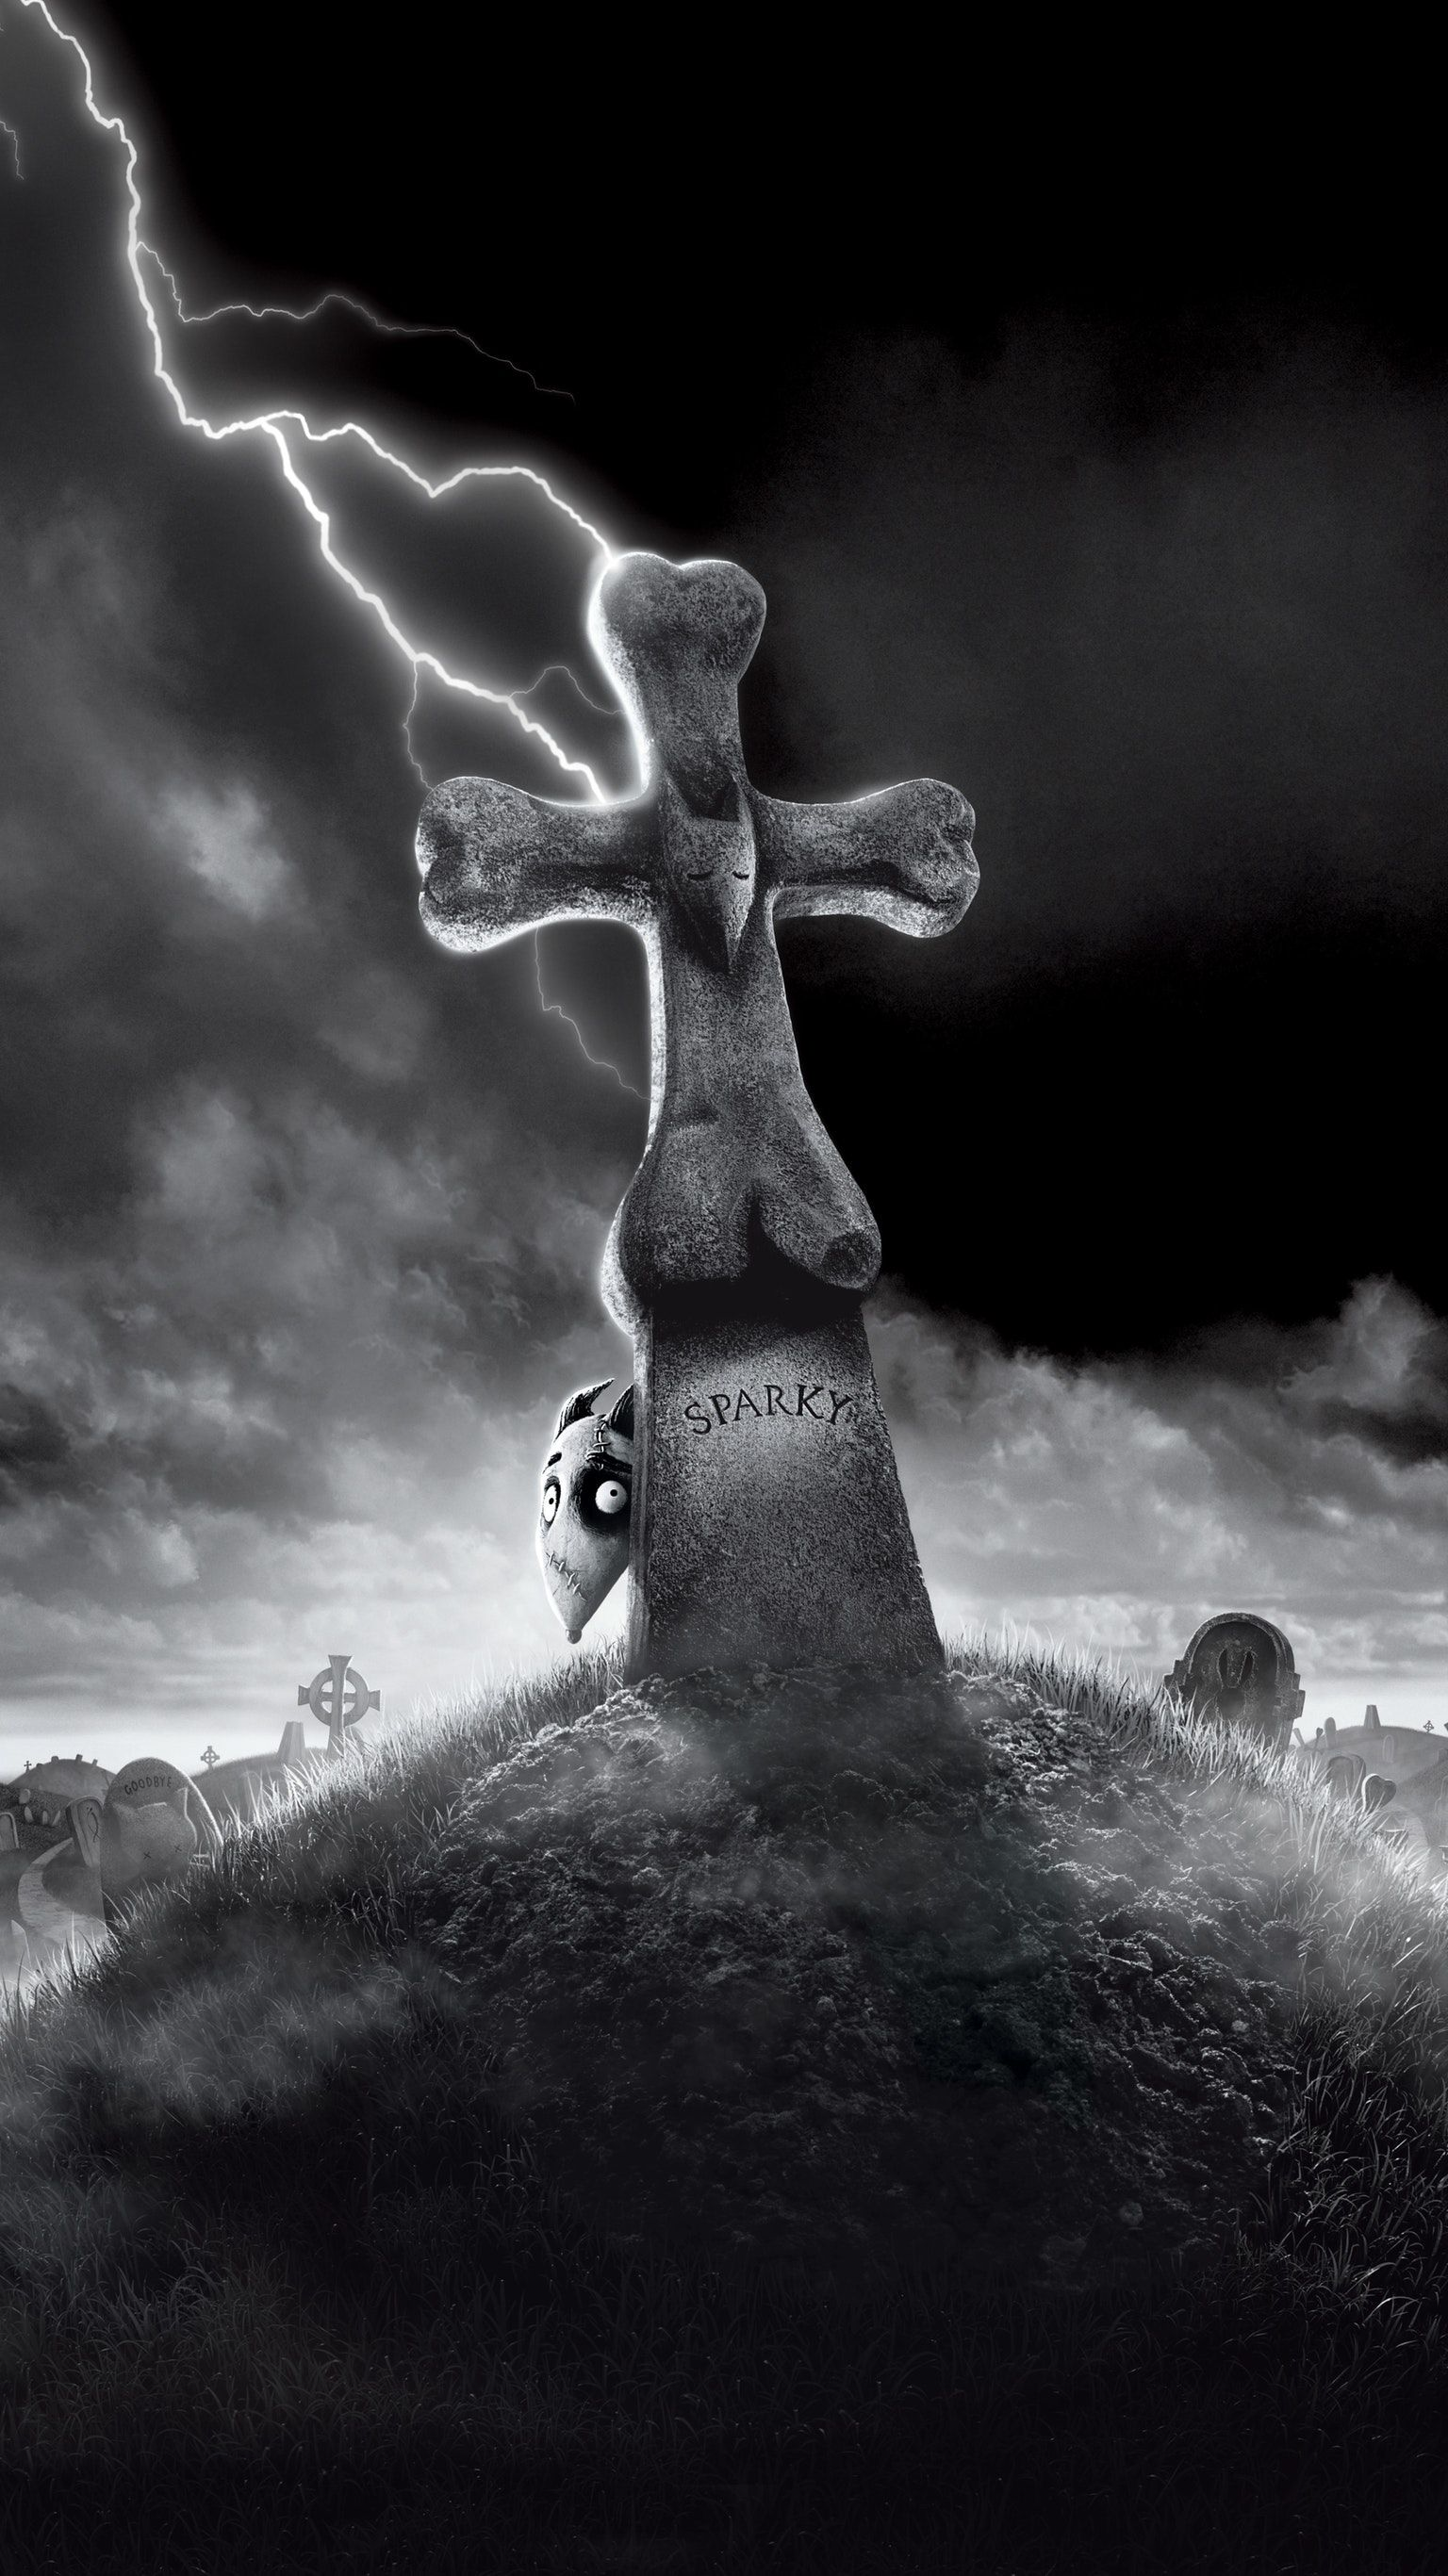 Frankenweenie 2012 Phone Wallpaper Moviemania Tim Burton Art Tim Burton Movie Phone Wallpaper